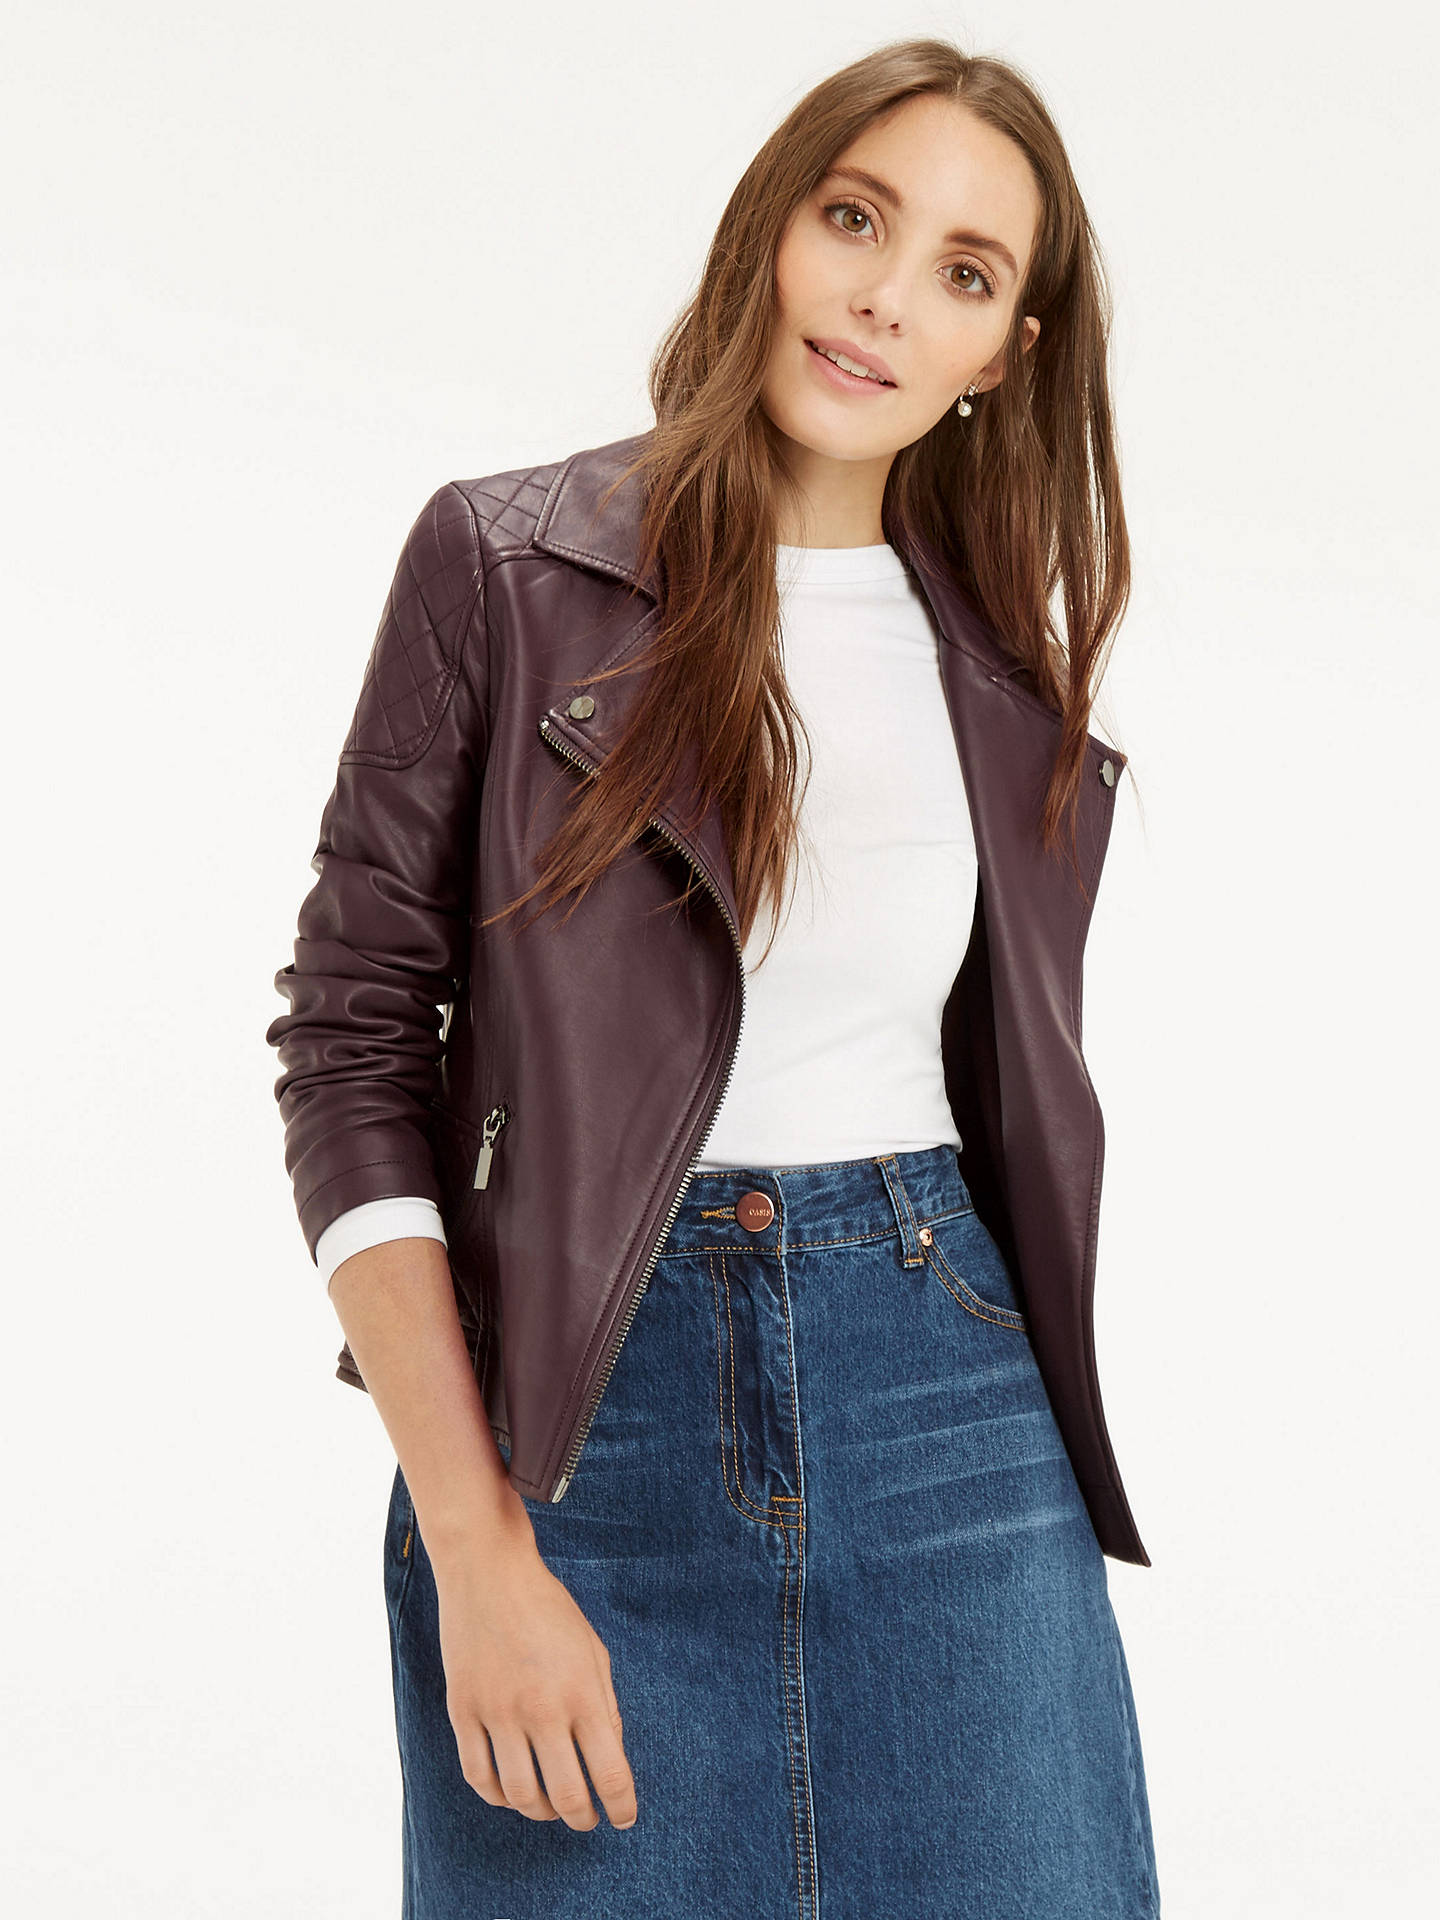 popular brand outstanding features luxury fashion Oasis Faux Leather Biker Jacket, Burgundy at John Lewis ...